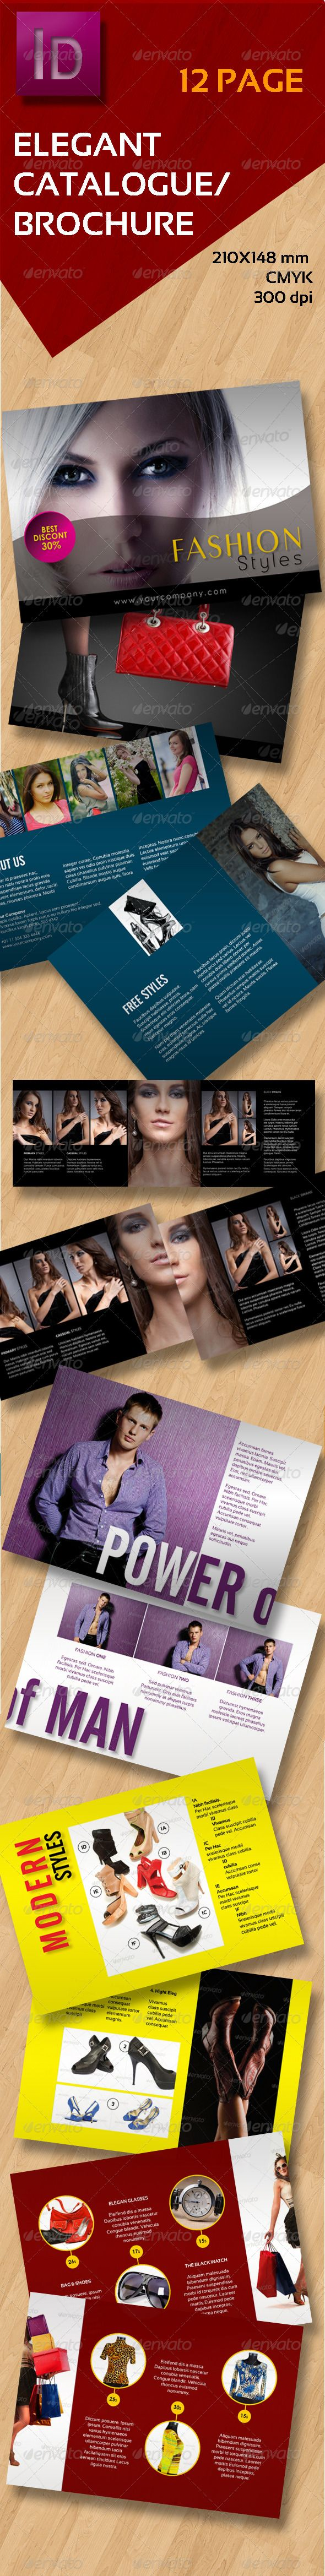 "Elegant A5 Catalogue  #GraphicRiver         Features  	 InDesign CS4 210mm x 148 mm 12 pages + Cover Print ready Bleed inches: 0.25 in CMYK – 300 dpi Files Included PDF help file  	 Font used: - Asenine: img.dafont /dl/?f=asenine - PenultimateLight:  .fonts101 /fonts/view/Uncategorized/51981/PenultimateLight - Sansation: img.dafont /dl/?f=sansation - Century Gothic  all images in ""priview"" not included in ""Main File"" Photos used in the previews can be purchased on photodune! photodune…"